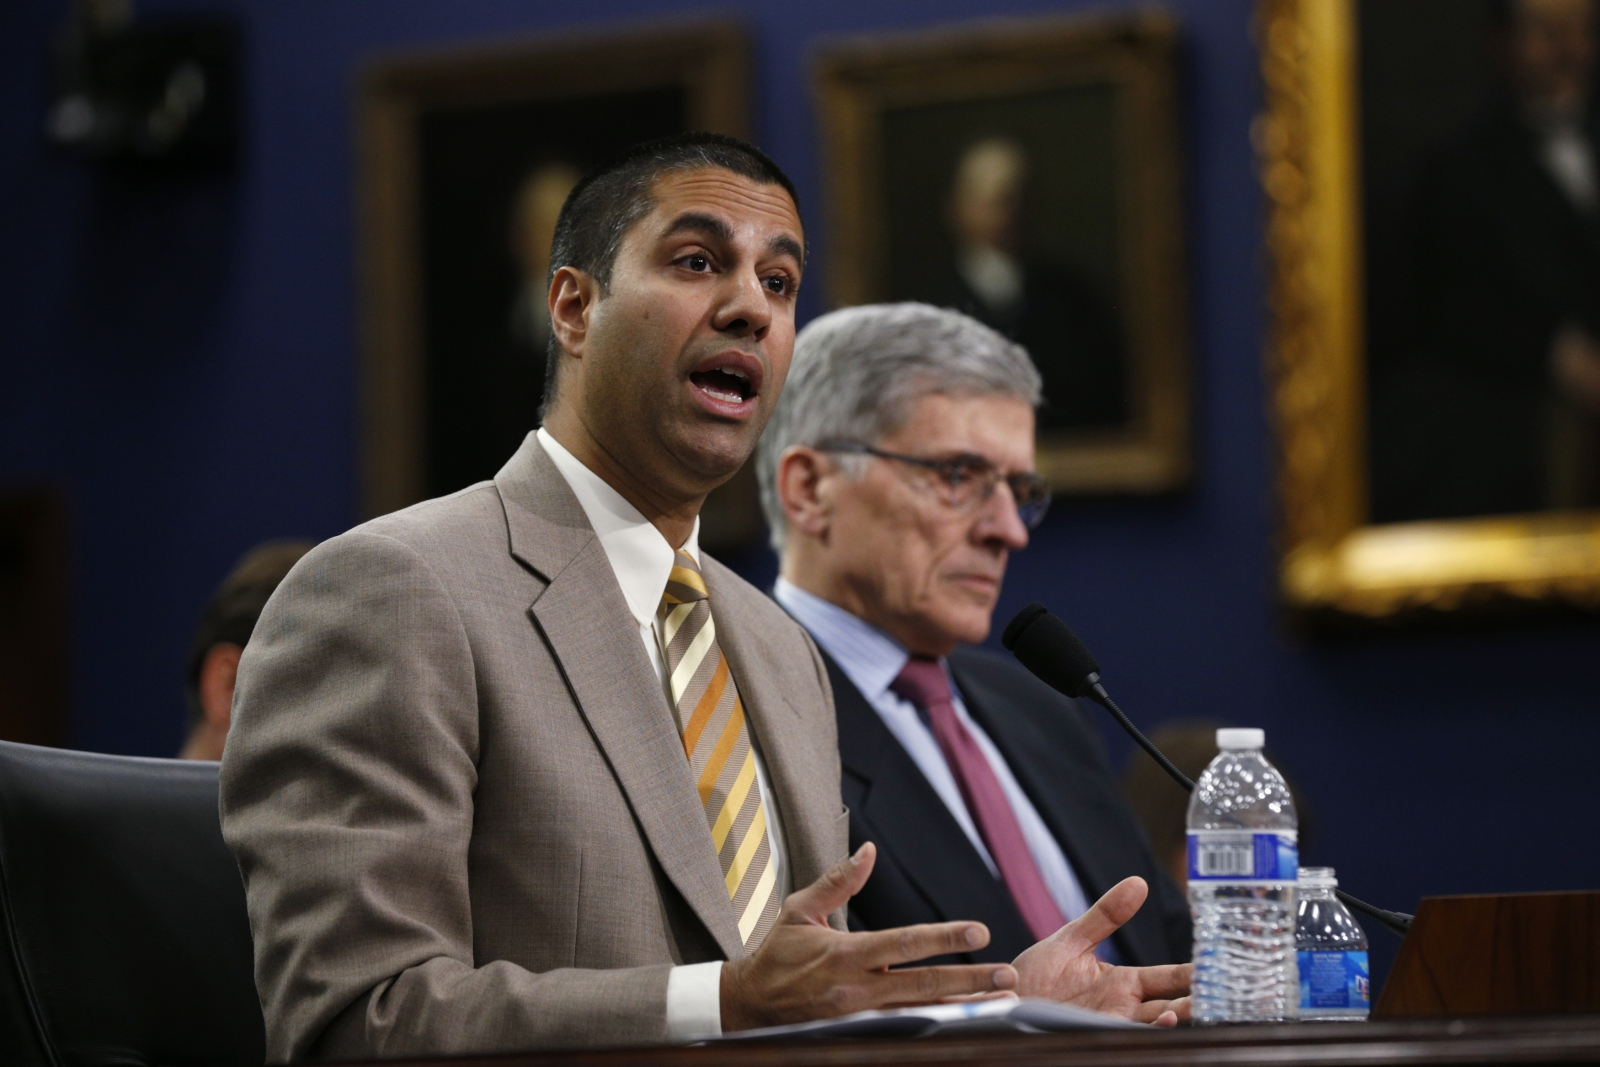 Trump's FCC chairman nominee Ajit Pai wants to end net neutrality